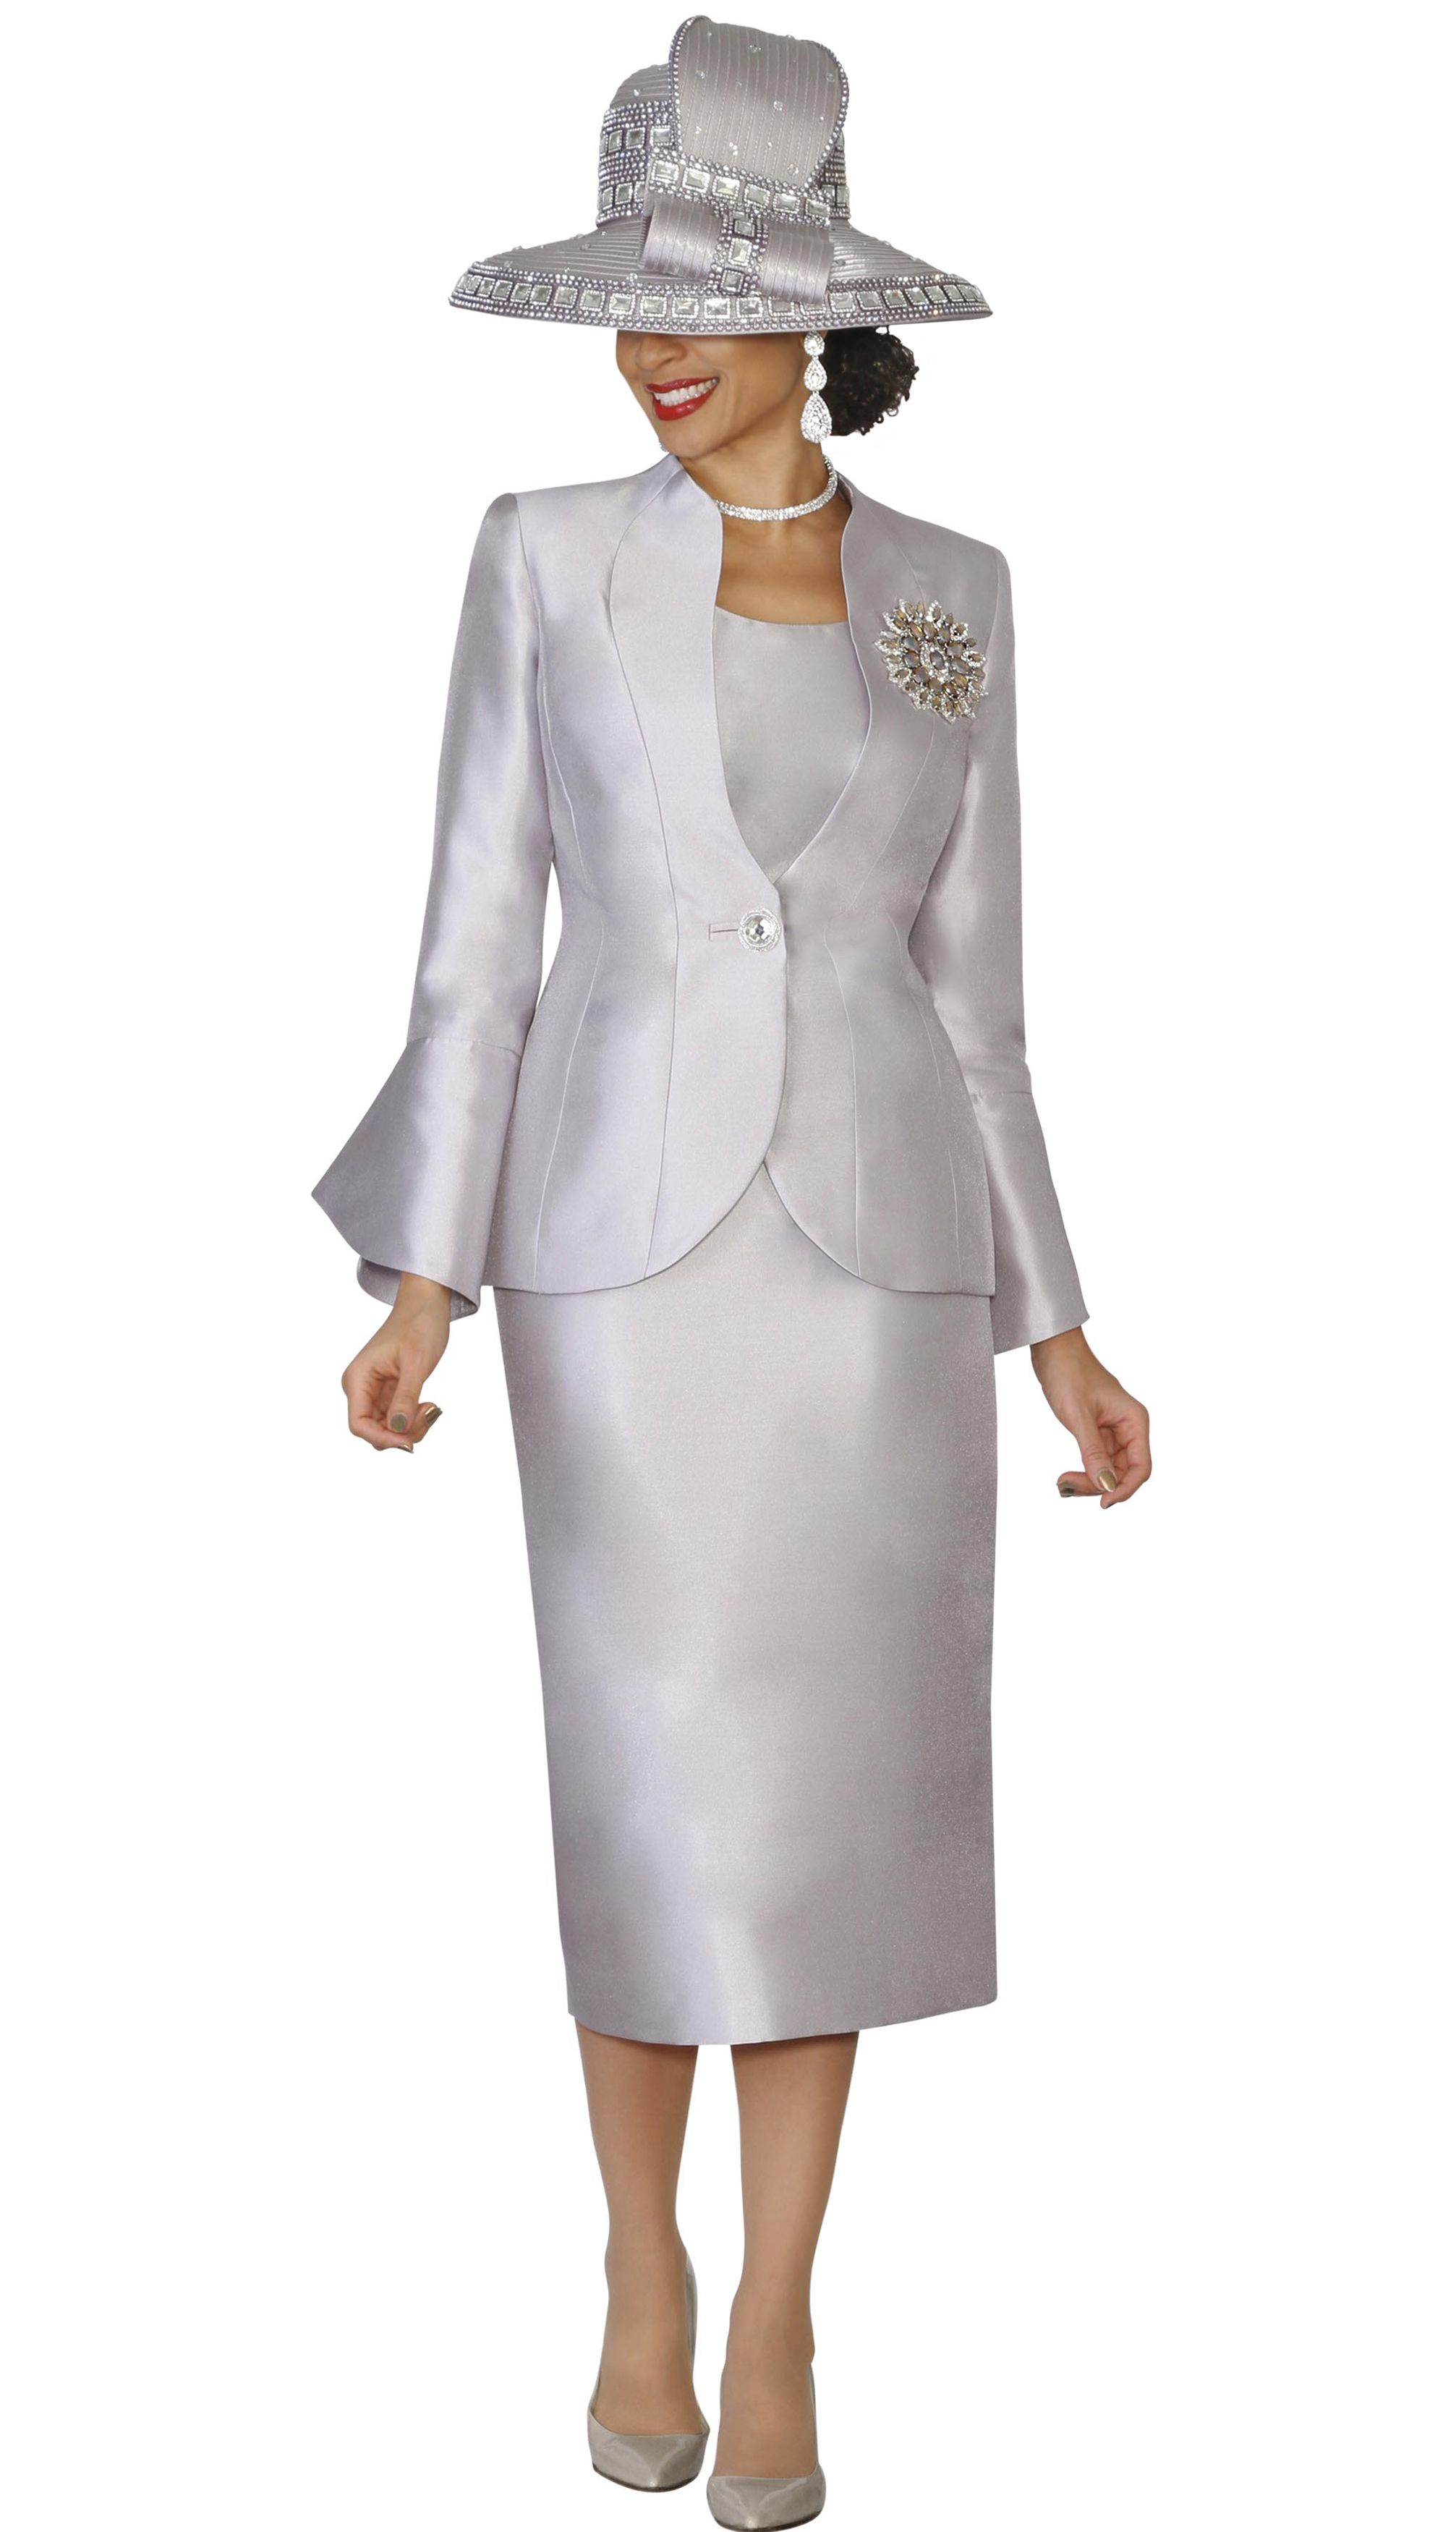 9360d4ebefc9b5 Lily and Taylor 4140-SIL 3 Piece Silky Twill Skirt Suit With Vented Cuff  Sleeves Colors Silver Apple Green Sizes 4 6 8 10 12 14 16 18 20 22 24